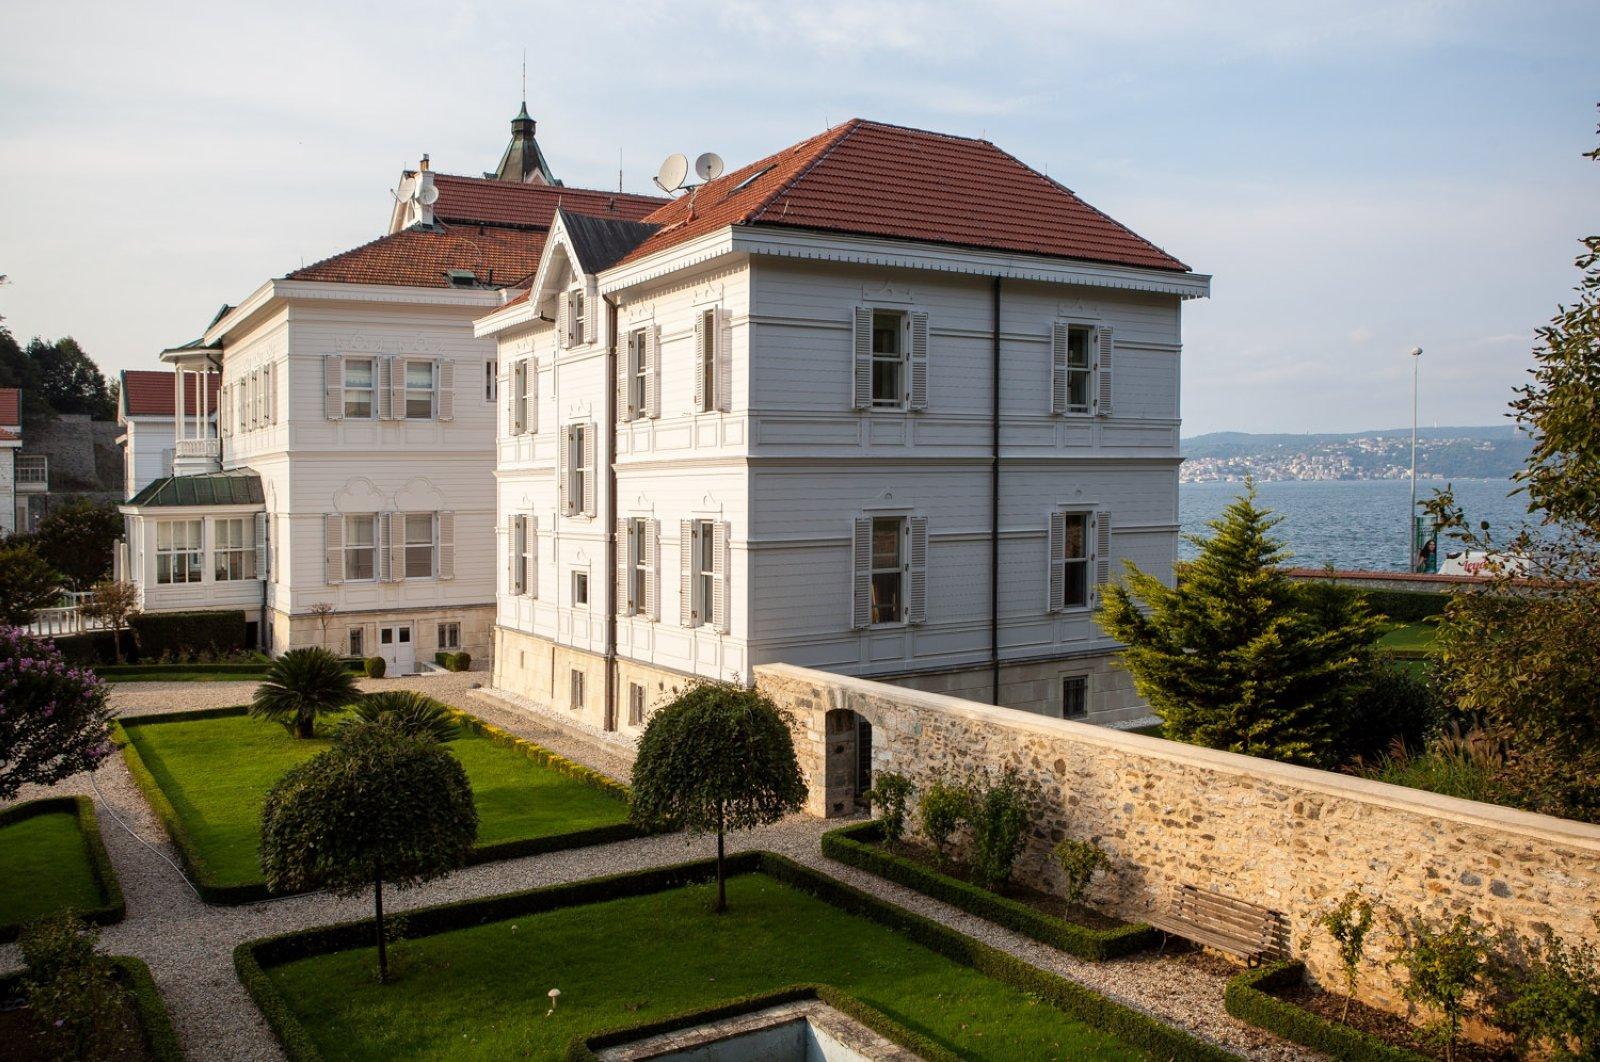 Established in 2011, Tarabya Cultural Academy is offering a new artist residency program to increase the collaboration between Turkey and Germany.